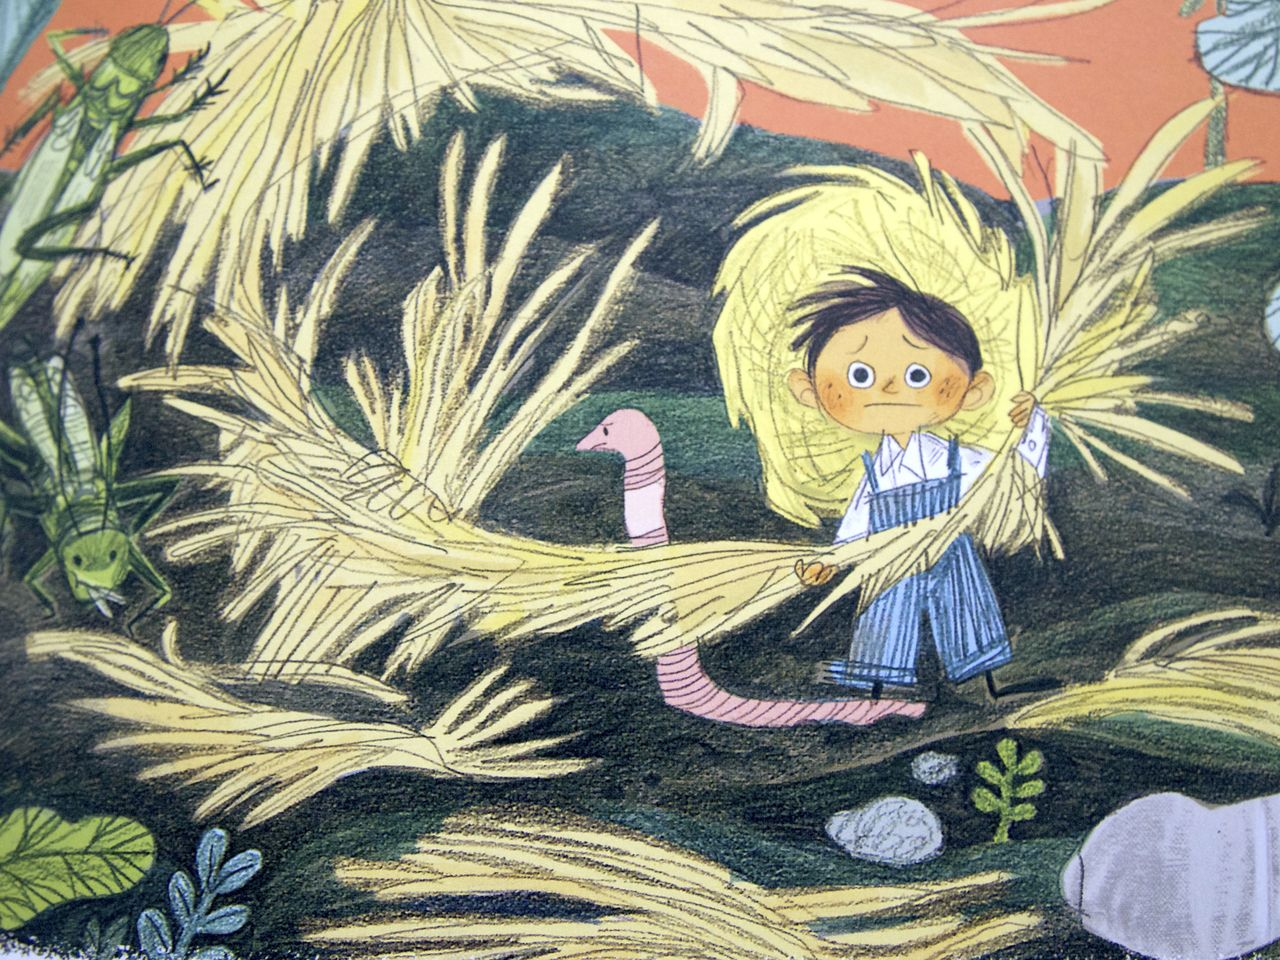 Emily Hughes, The little gardener, Flying Eye Books